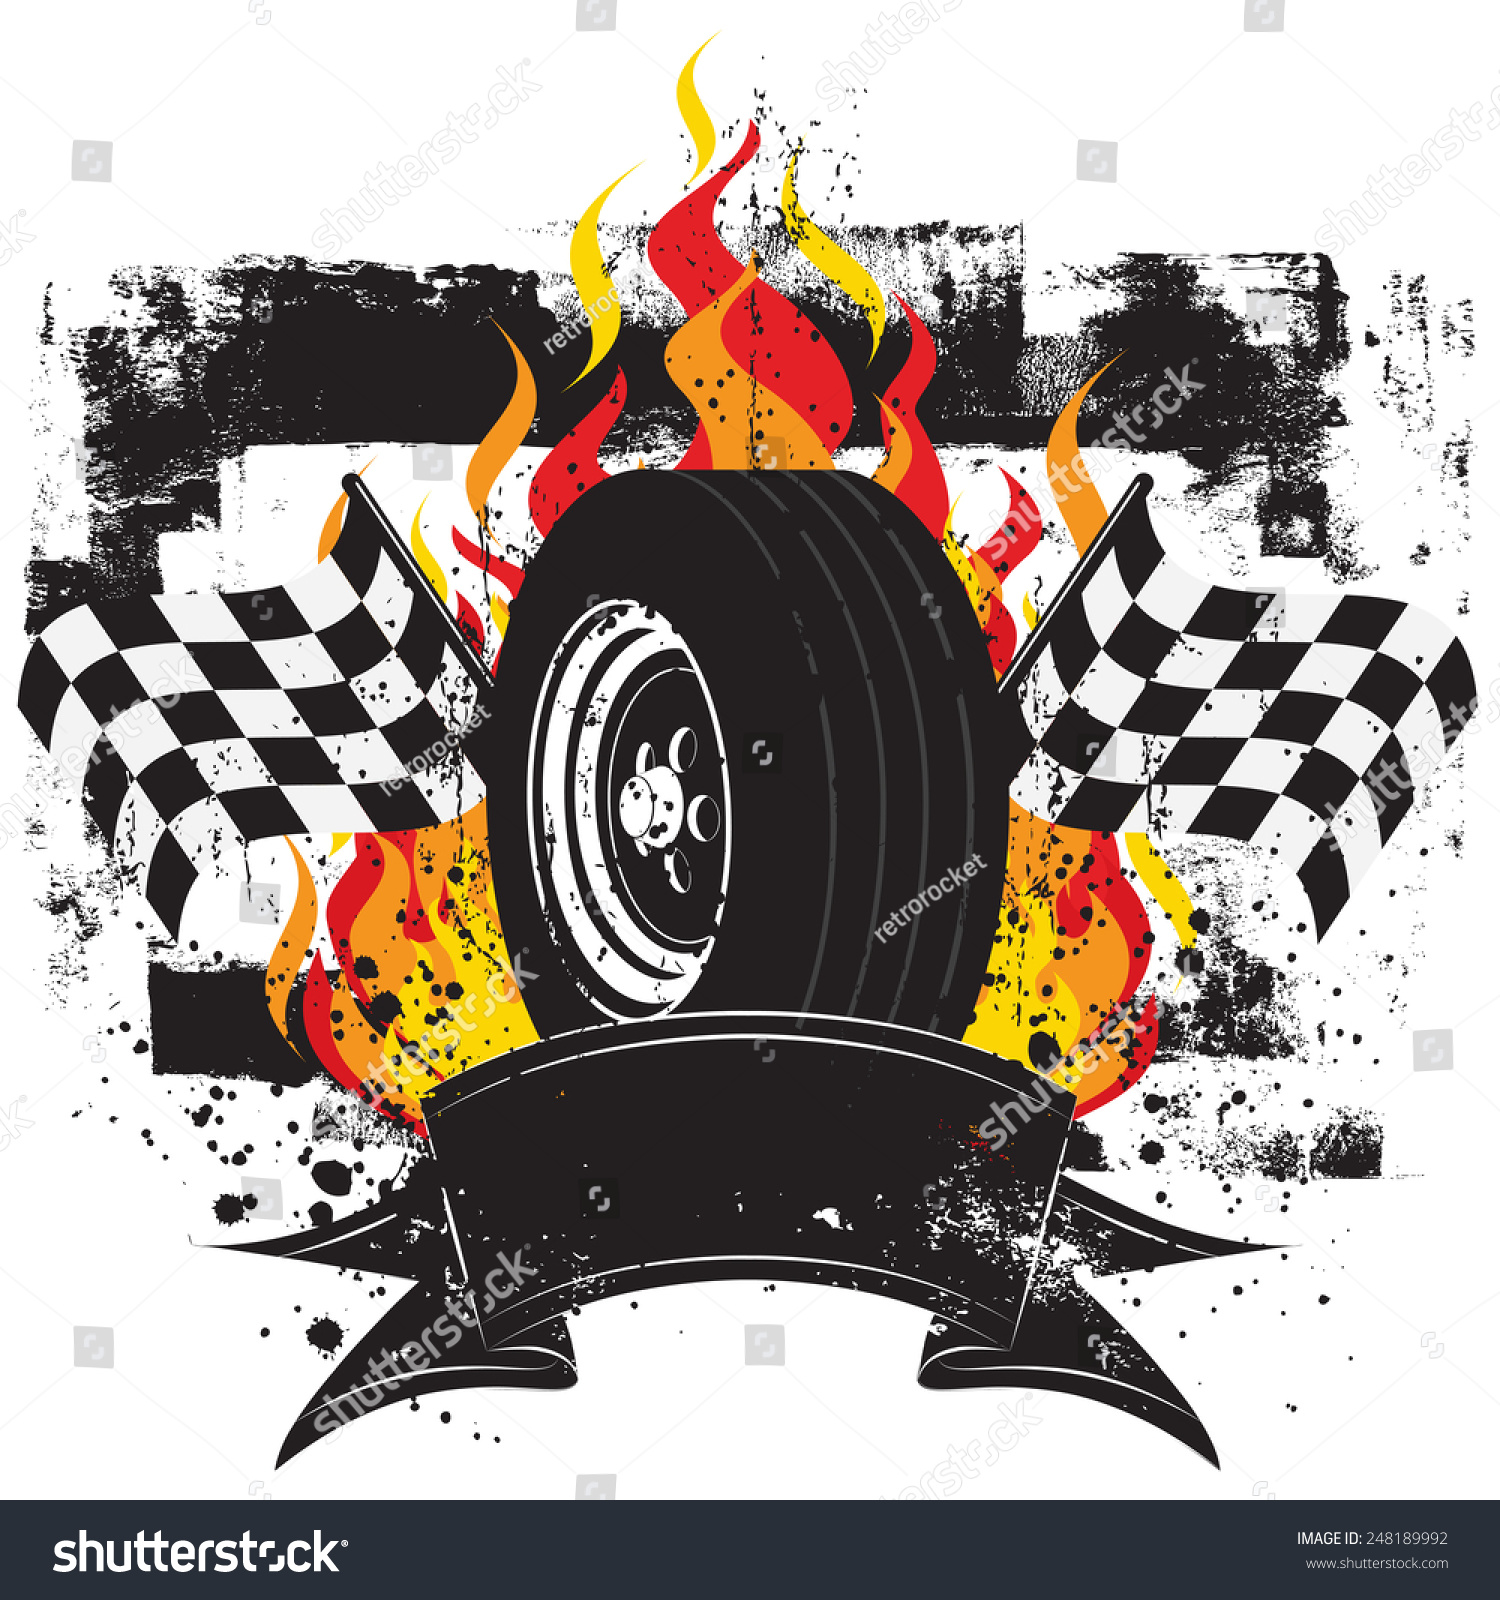 Racing Insignia Race Car Tire Front Stock Vector 248189992 ... for Racing Tire Vector  195sfw